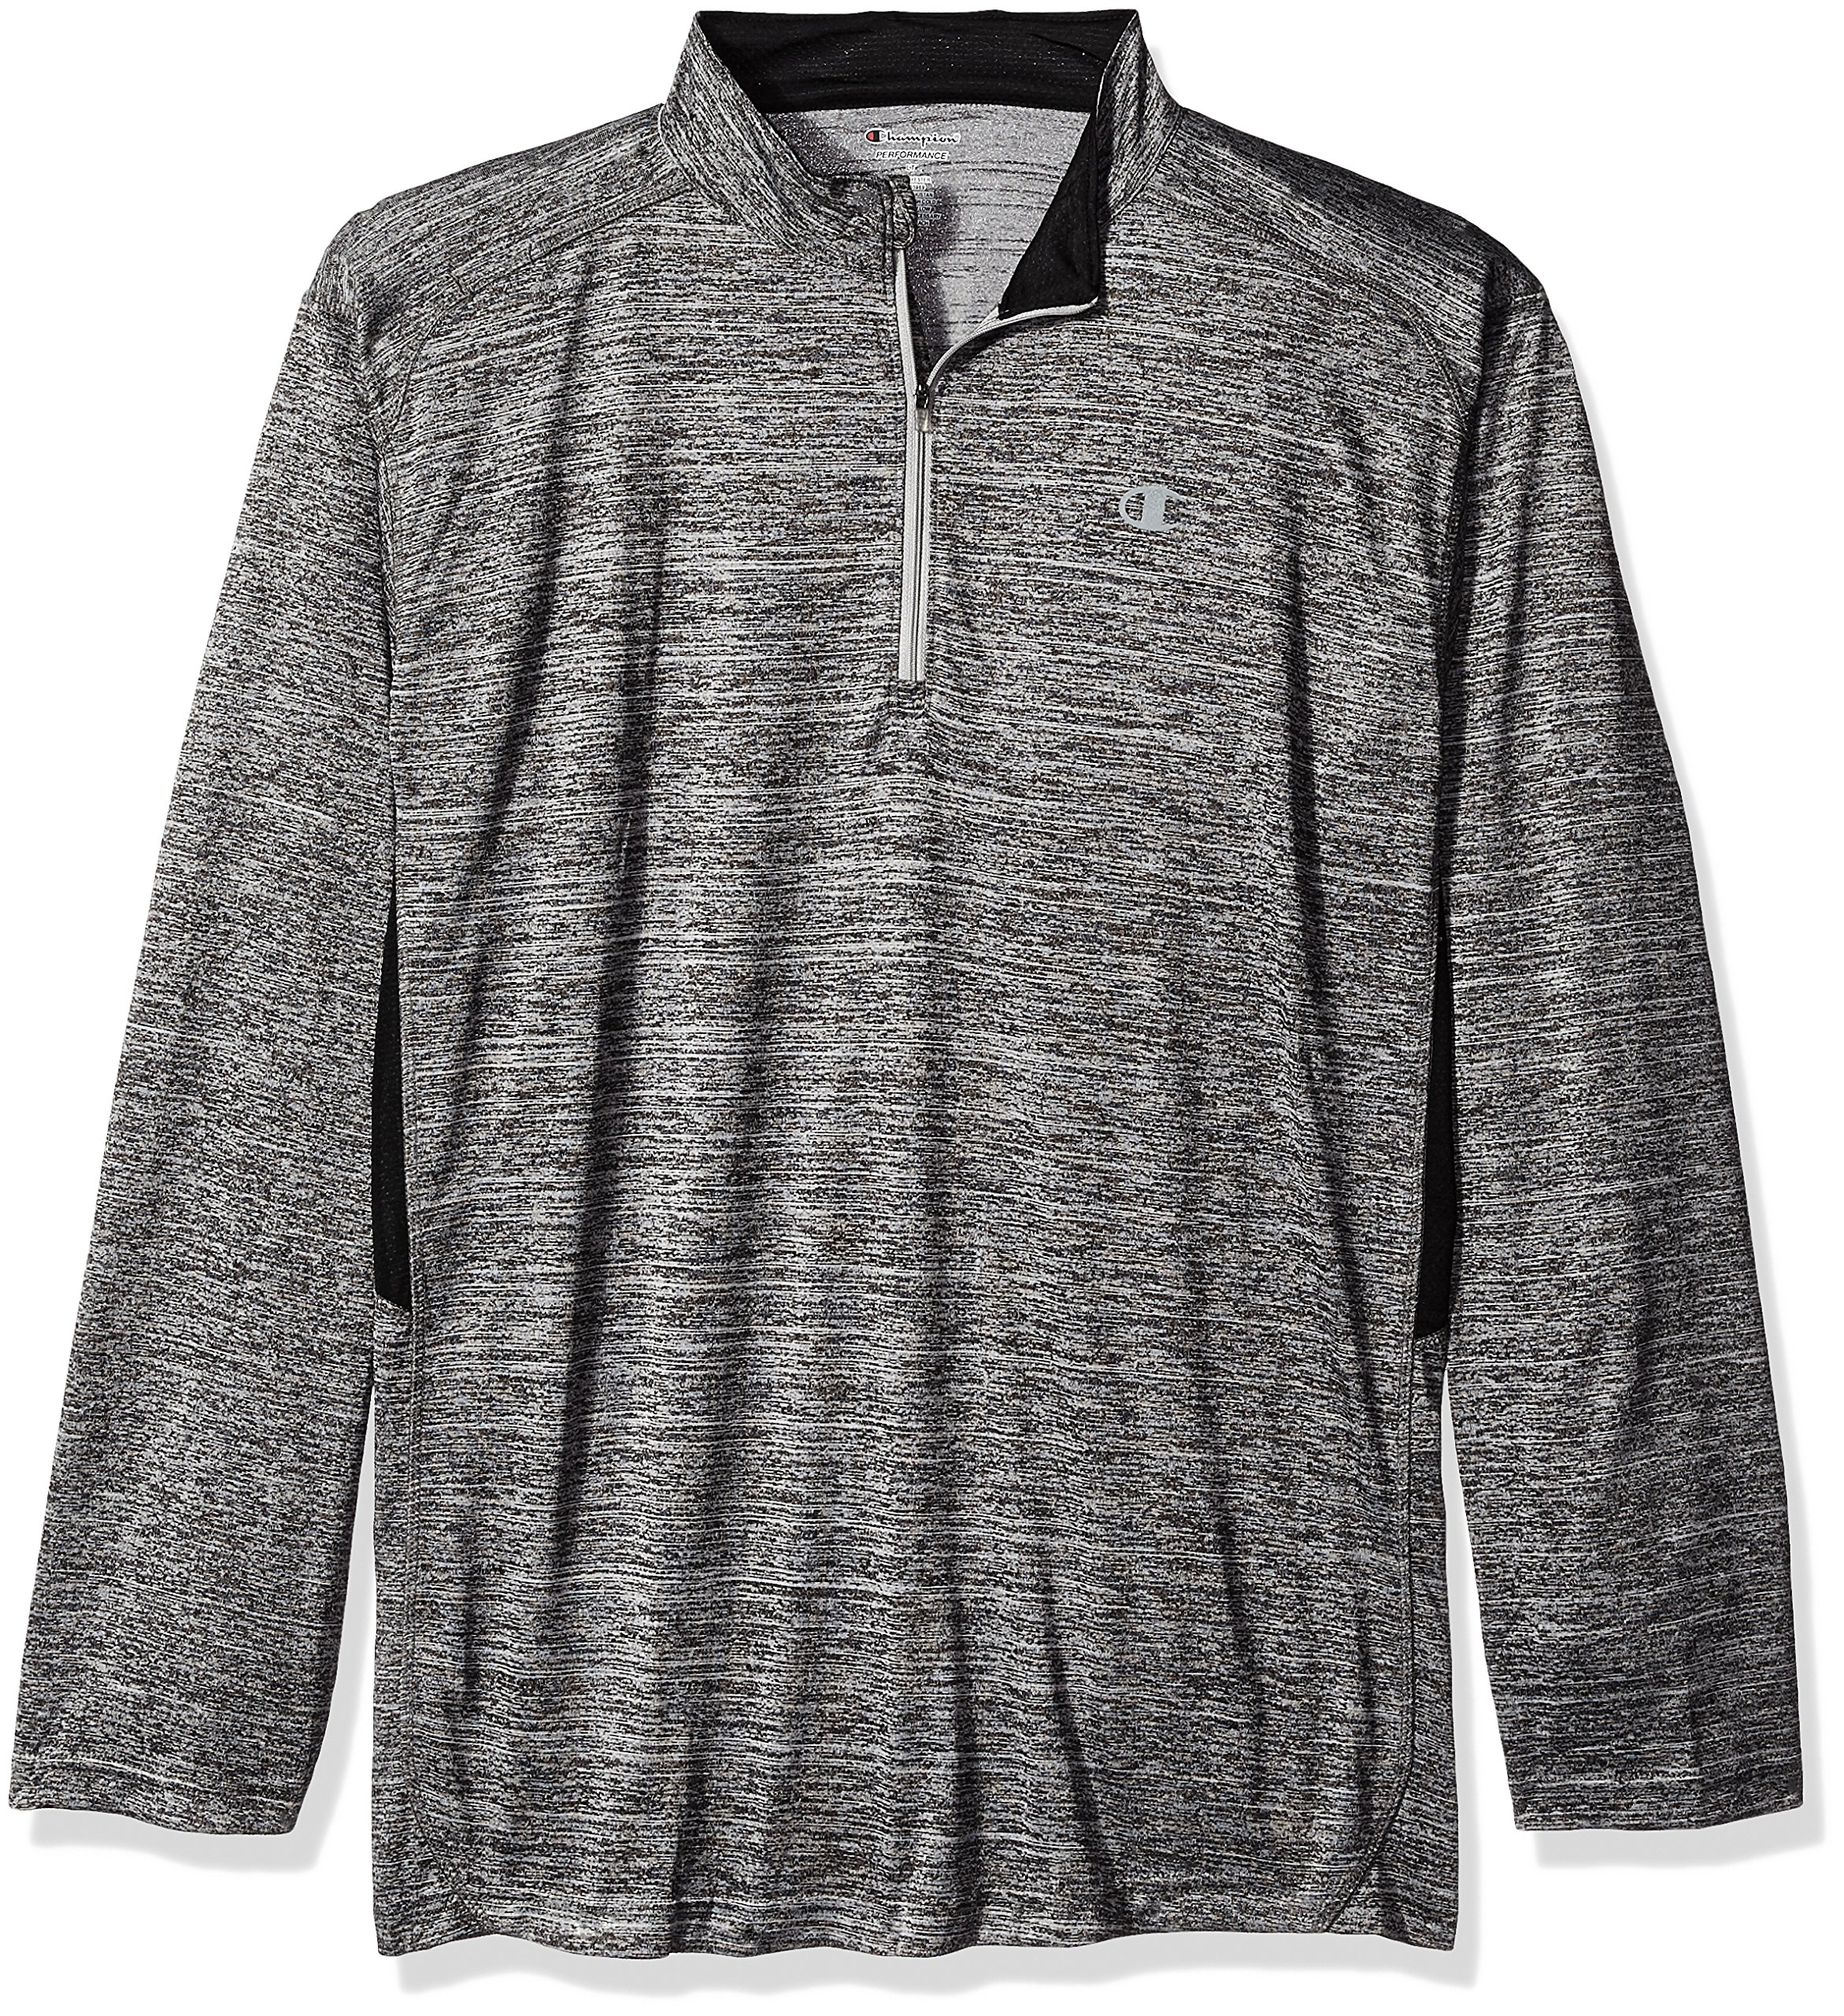 Champion Men's Big and Tall 1/4 Zip Pullover with Lc c, Granite/Black, LT by Champion